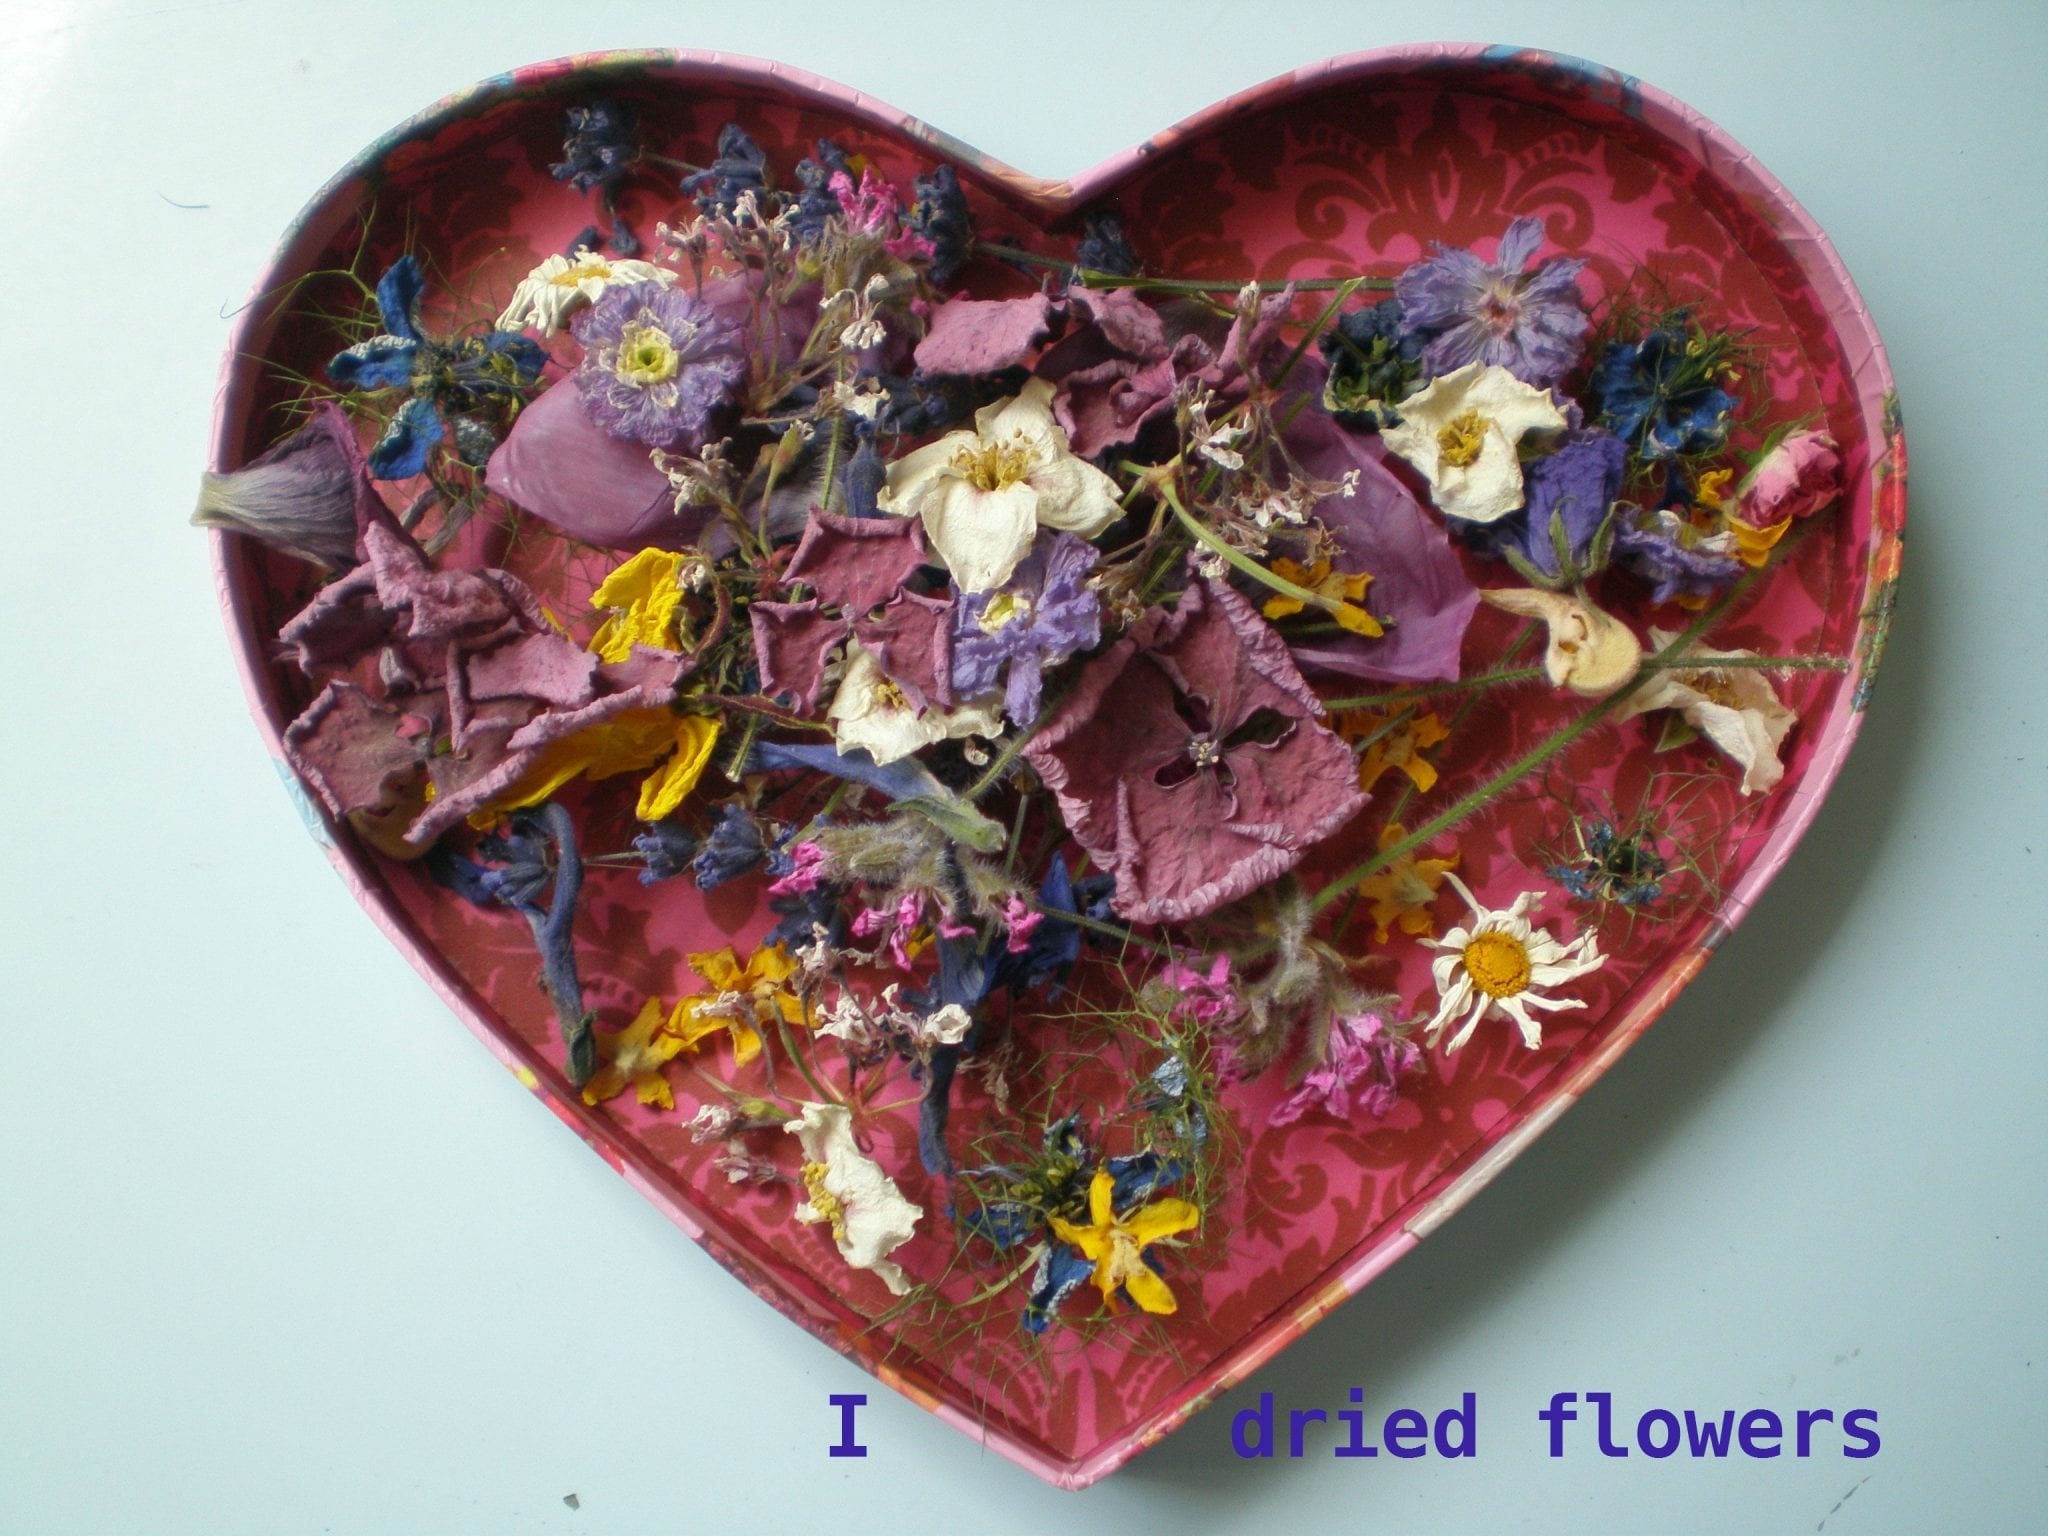 I love dried flowers